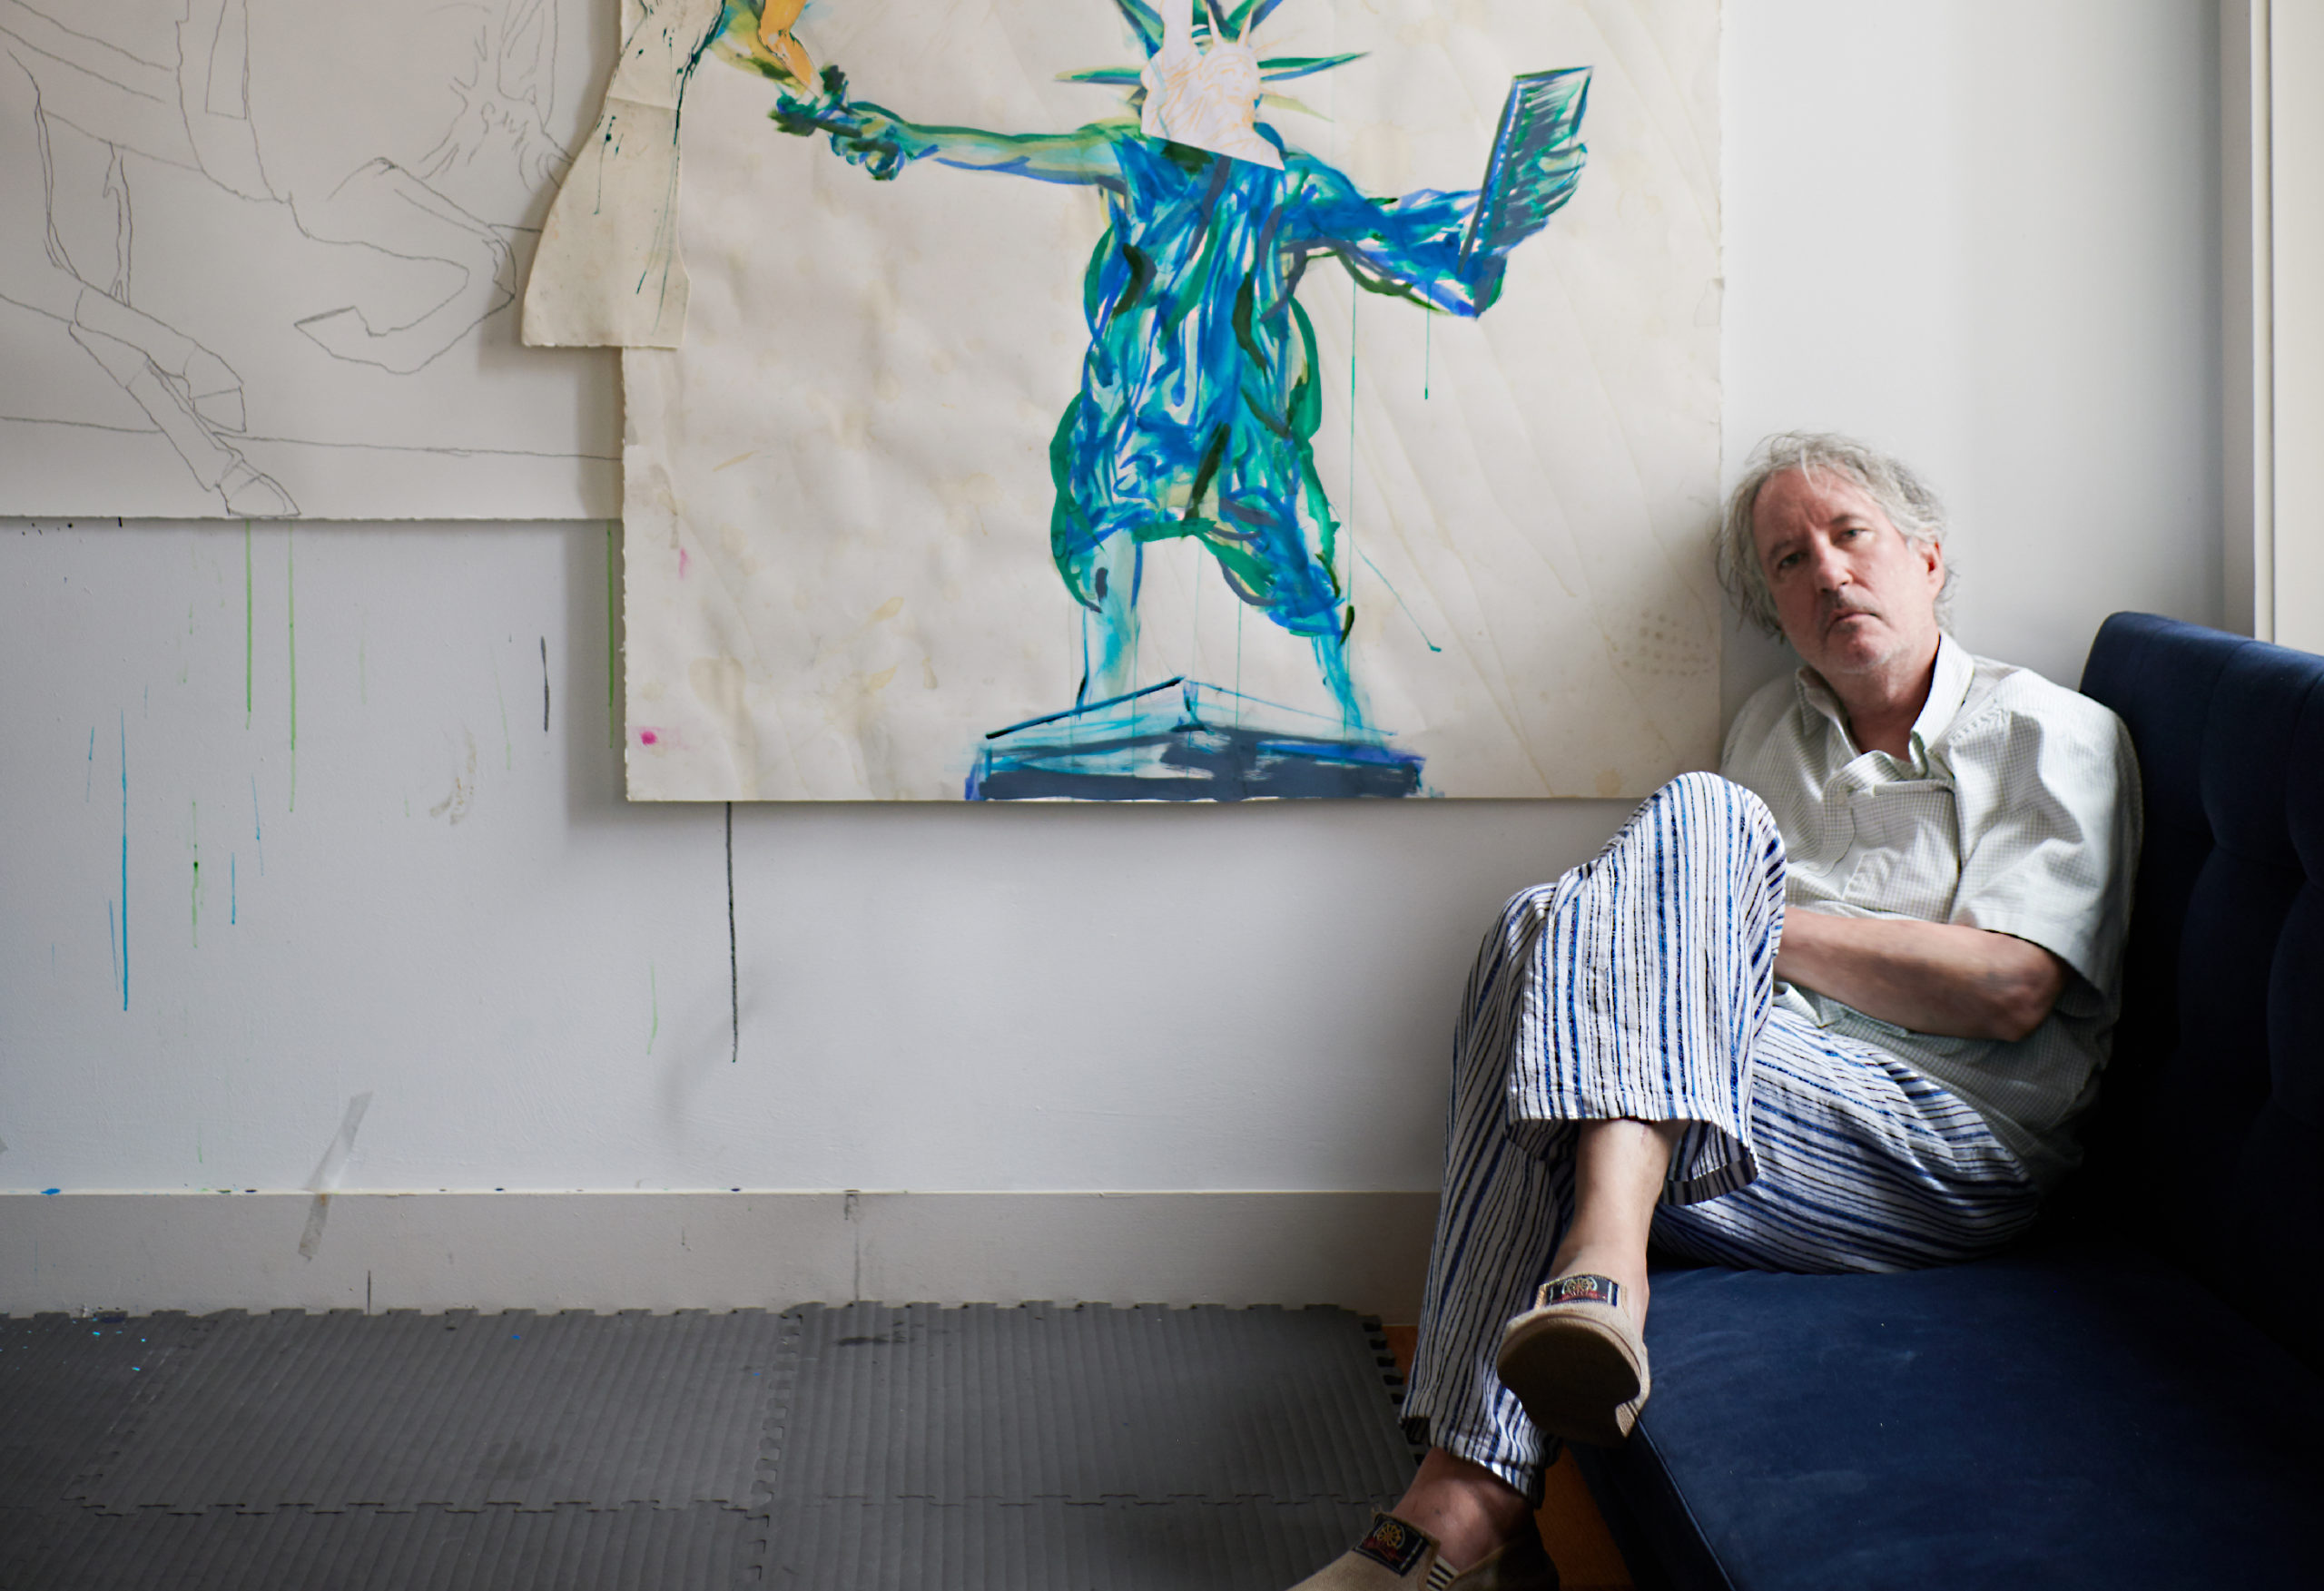 All images © Raymond Pettibon. Courtesy the artist and David Zwirner